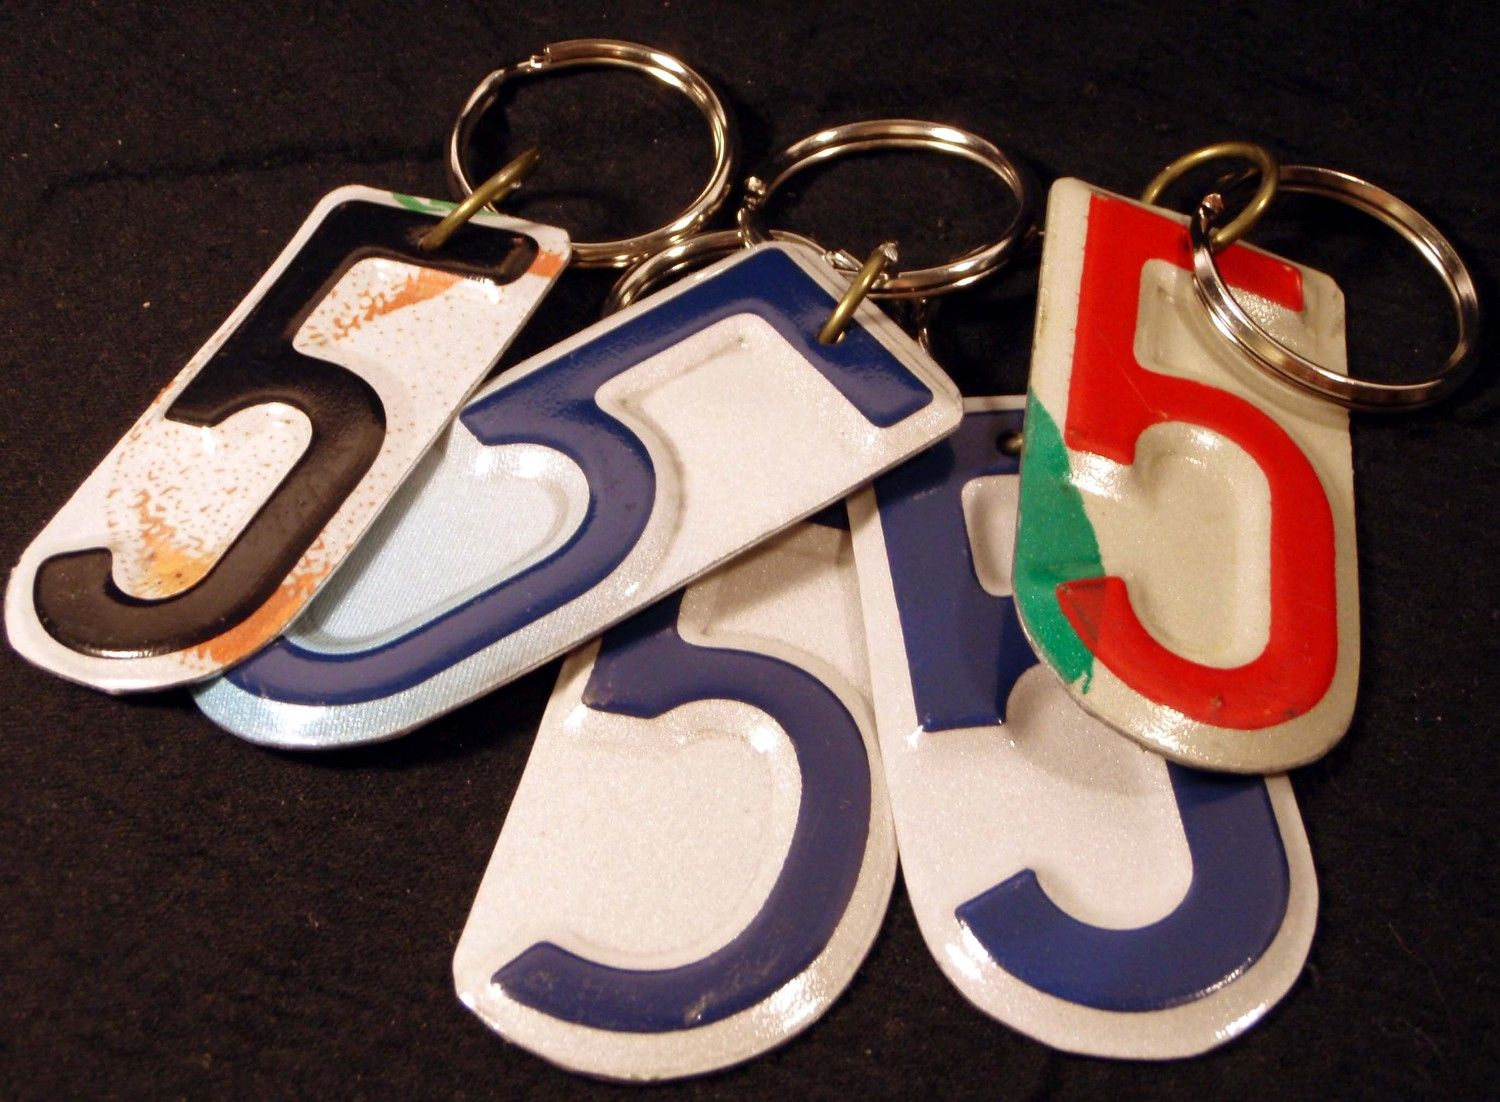 Five License Plate Number 5 Key Chain   5 95  Via Etsy